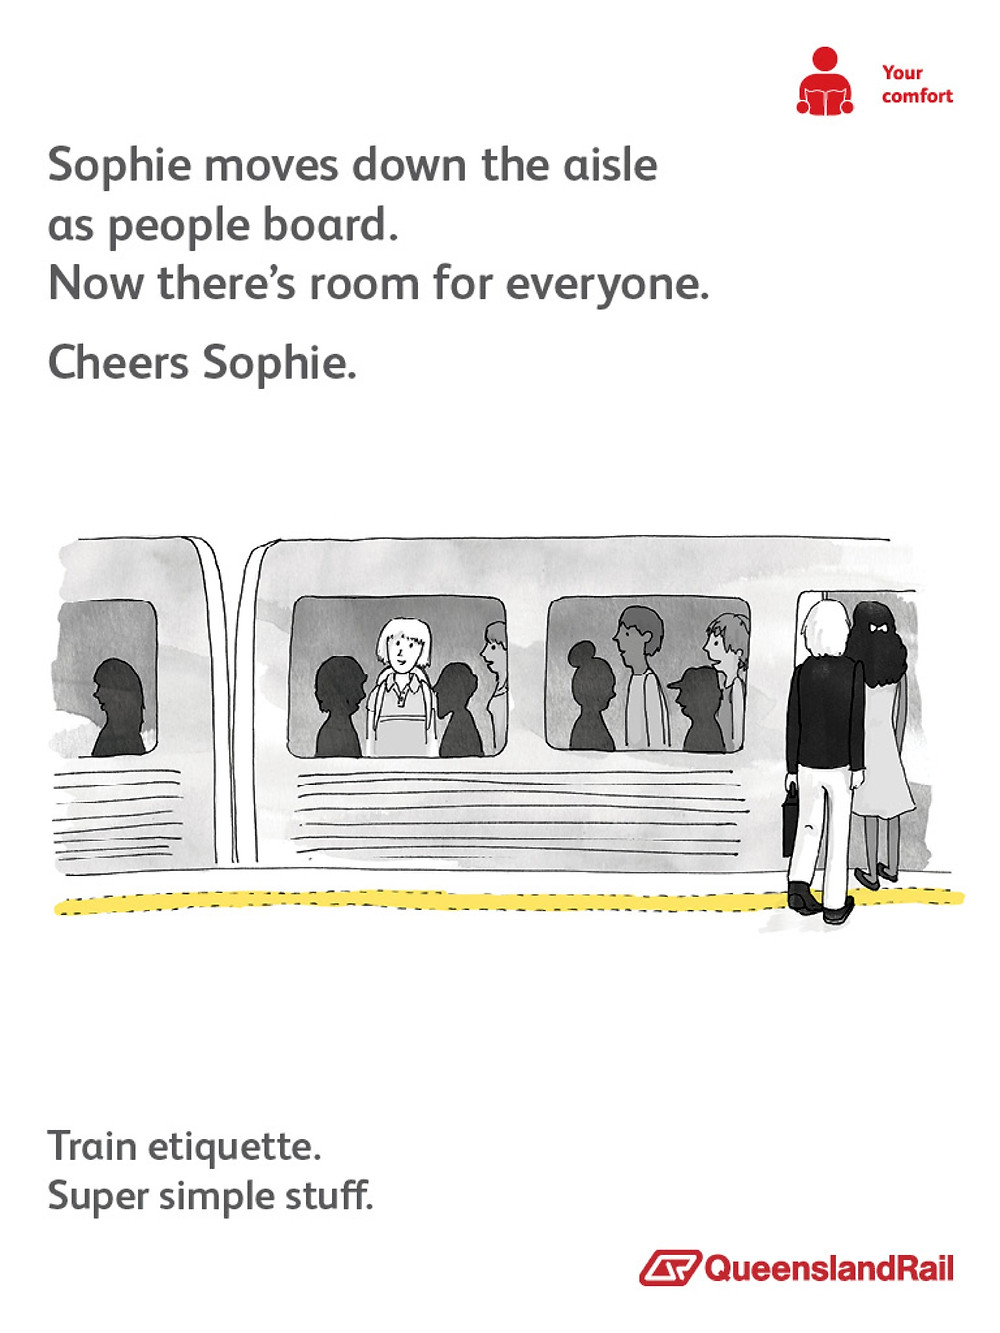 Train etiquette poster, sophie moves to the middle of the aisle to make room for more passengers